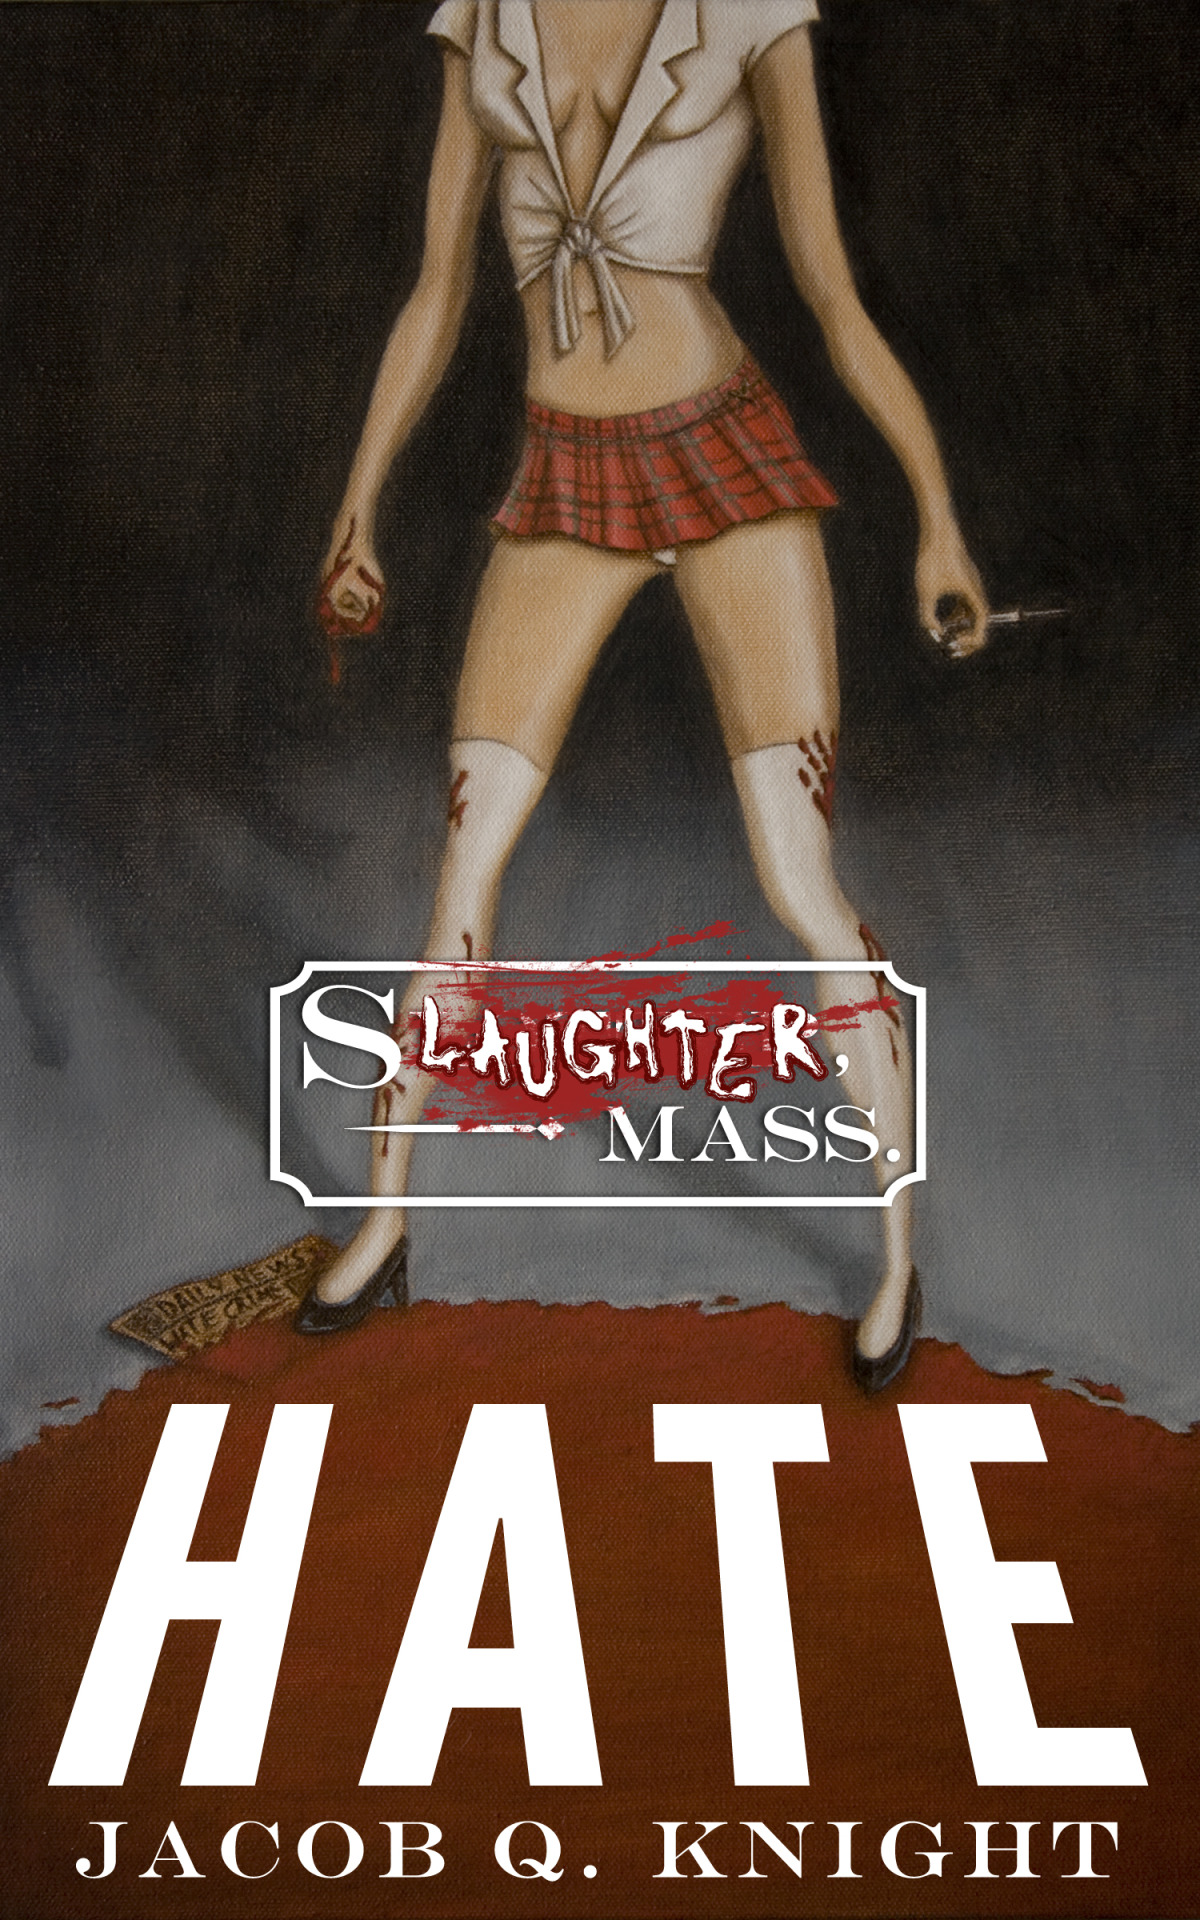 HATE, the Second Book in the SLAUGHTER, MASS. series, is out now via Amazon.